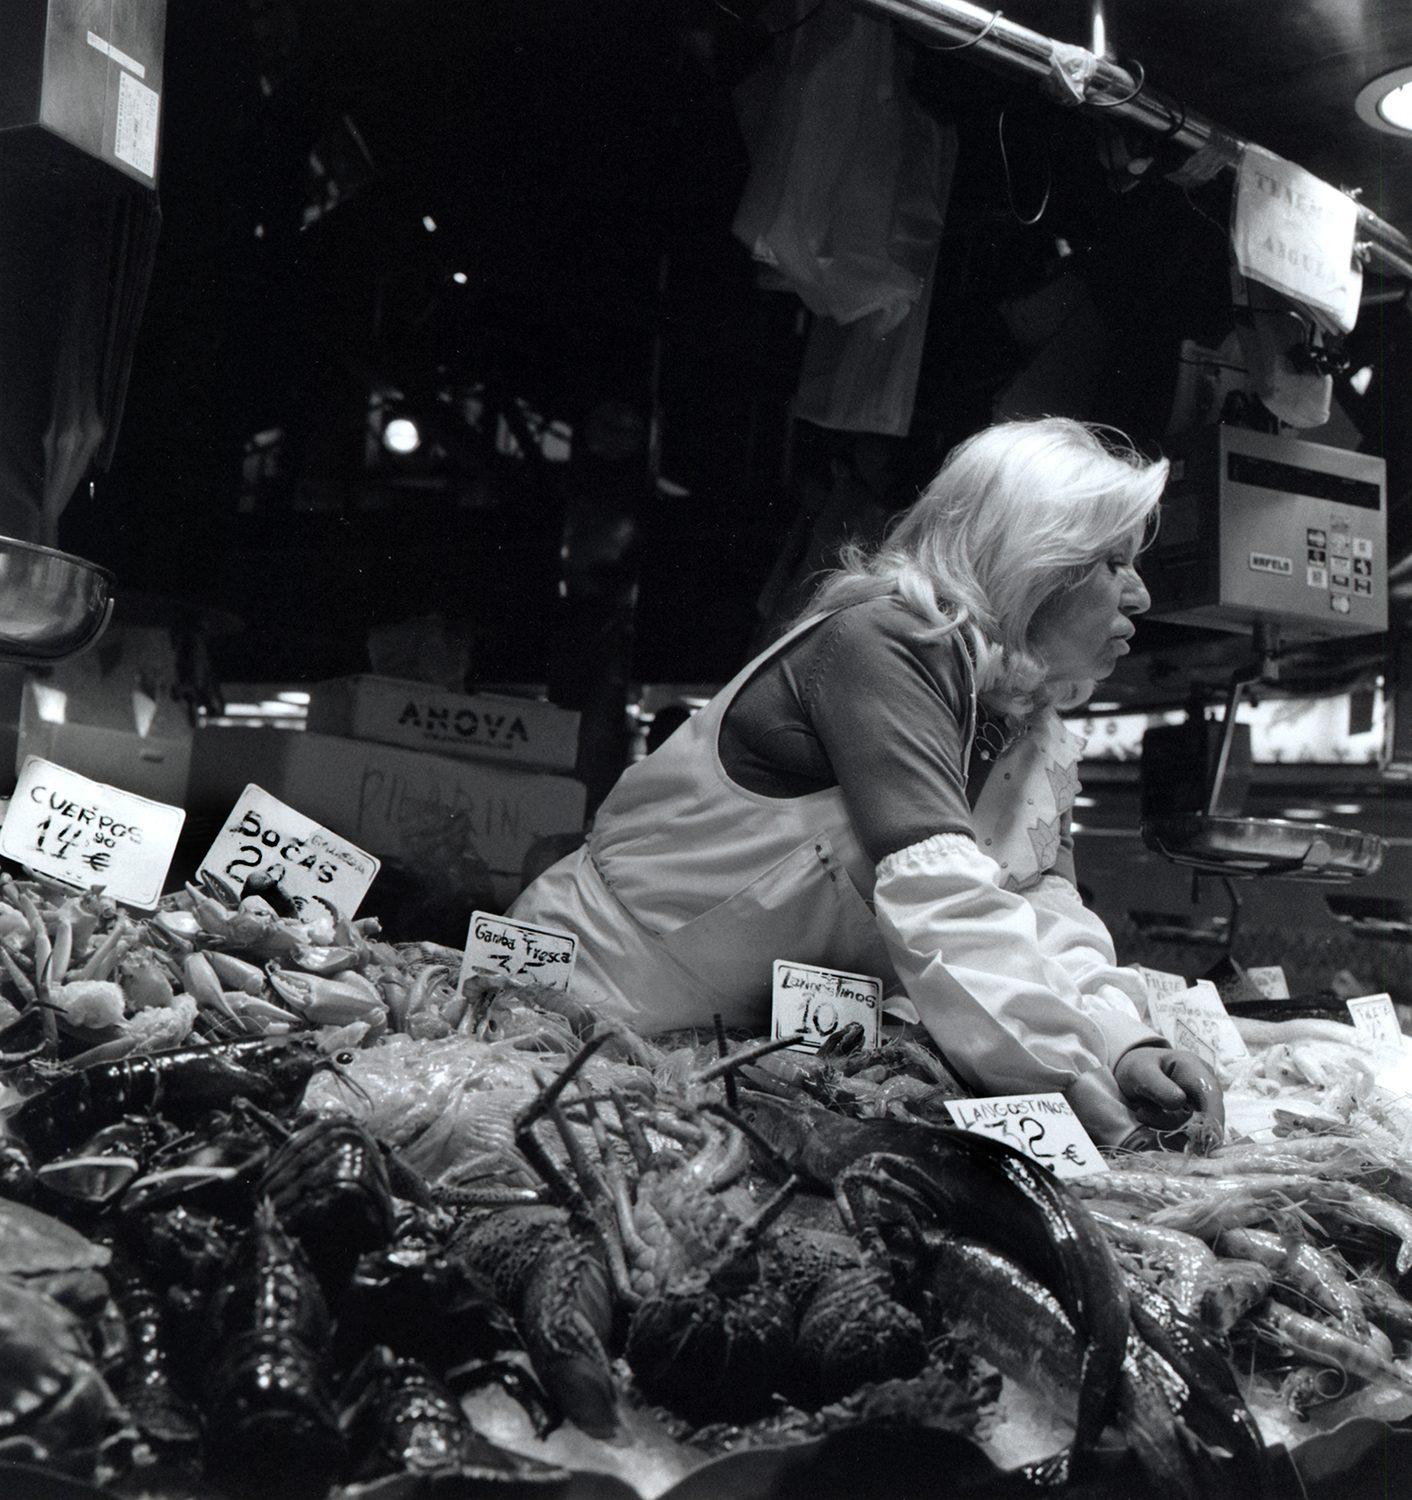 Lady serving in la boqueria fish market, Barcelona, Spain shot on ILFORD black and white film by Keith Moss